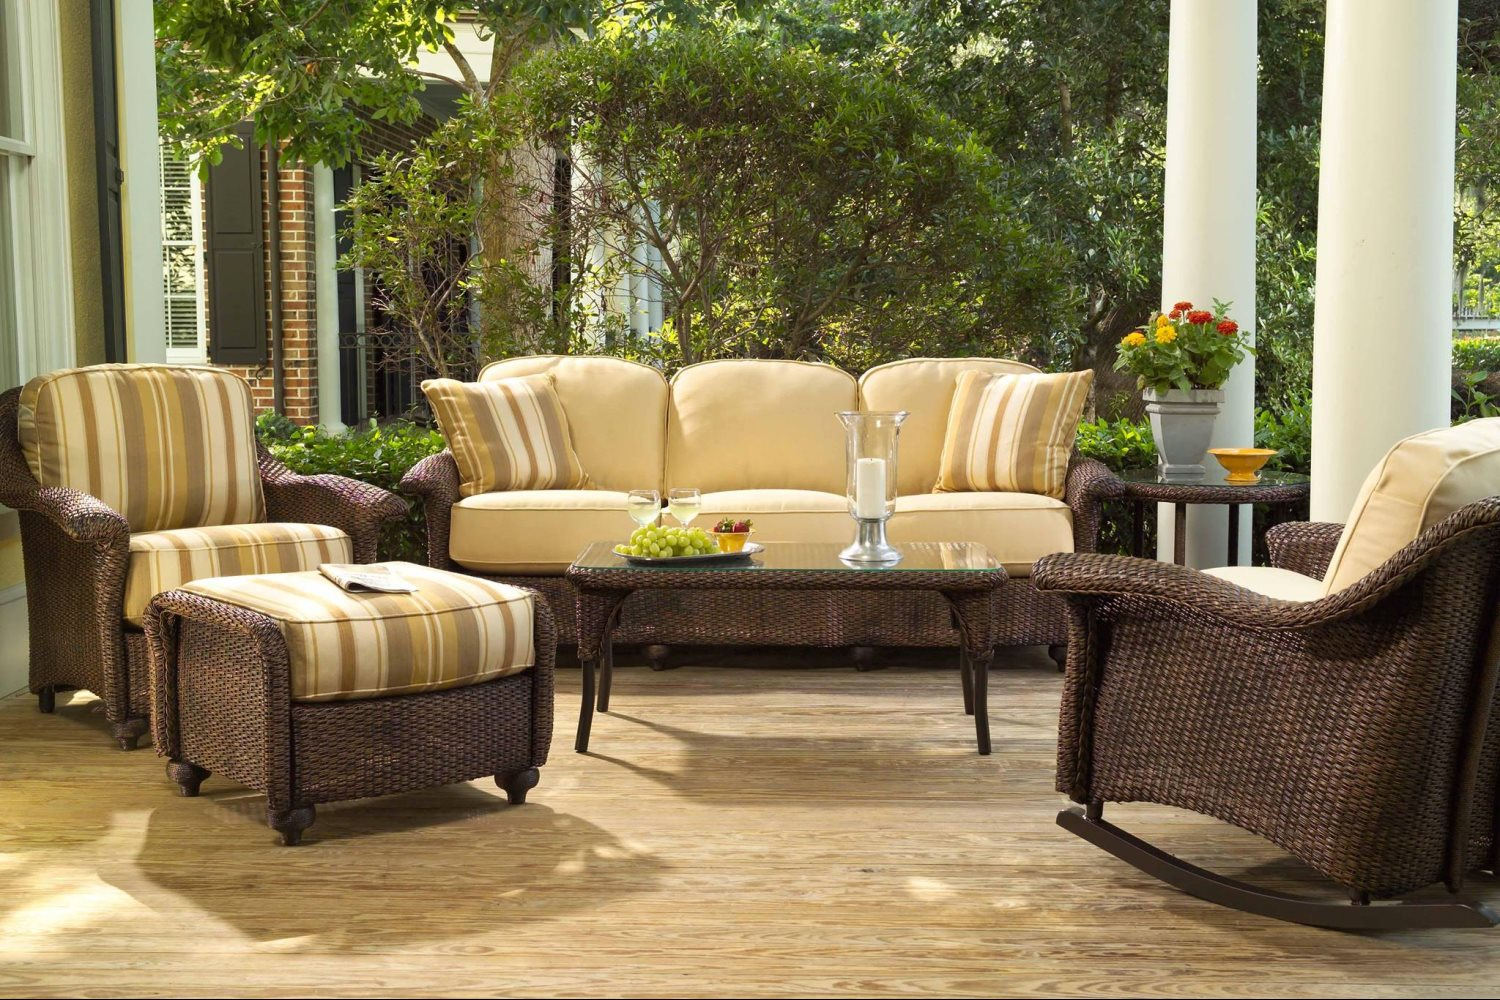 Patio furniture outdoor seating dining patio for Outdoor furniture images